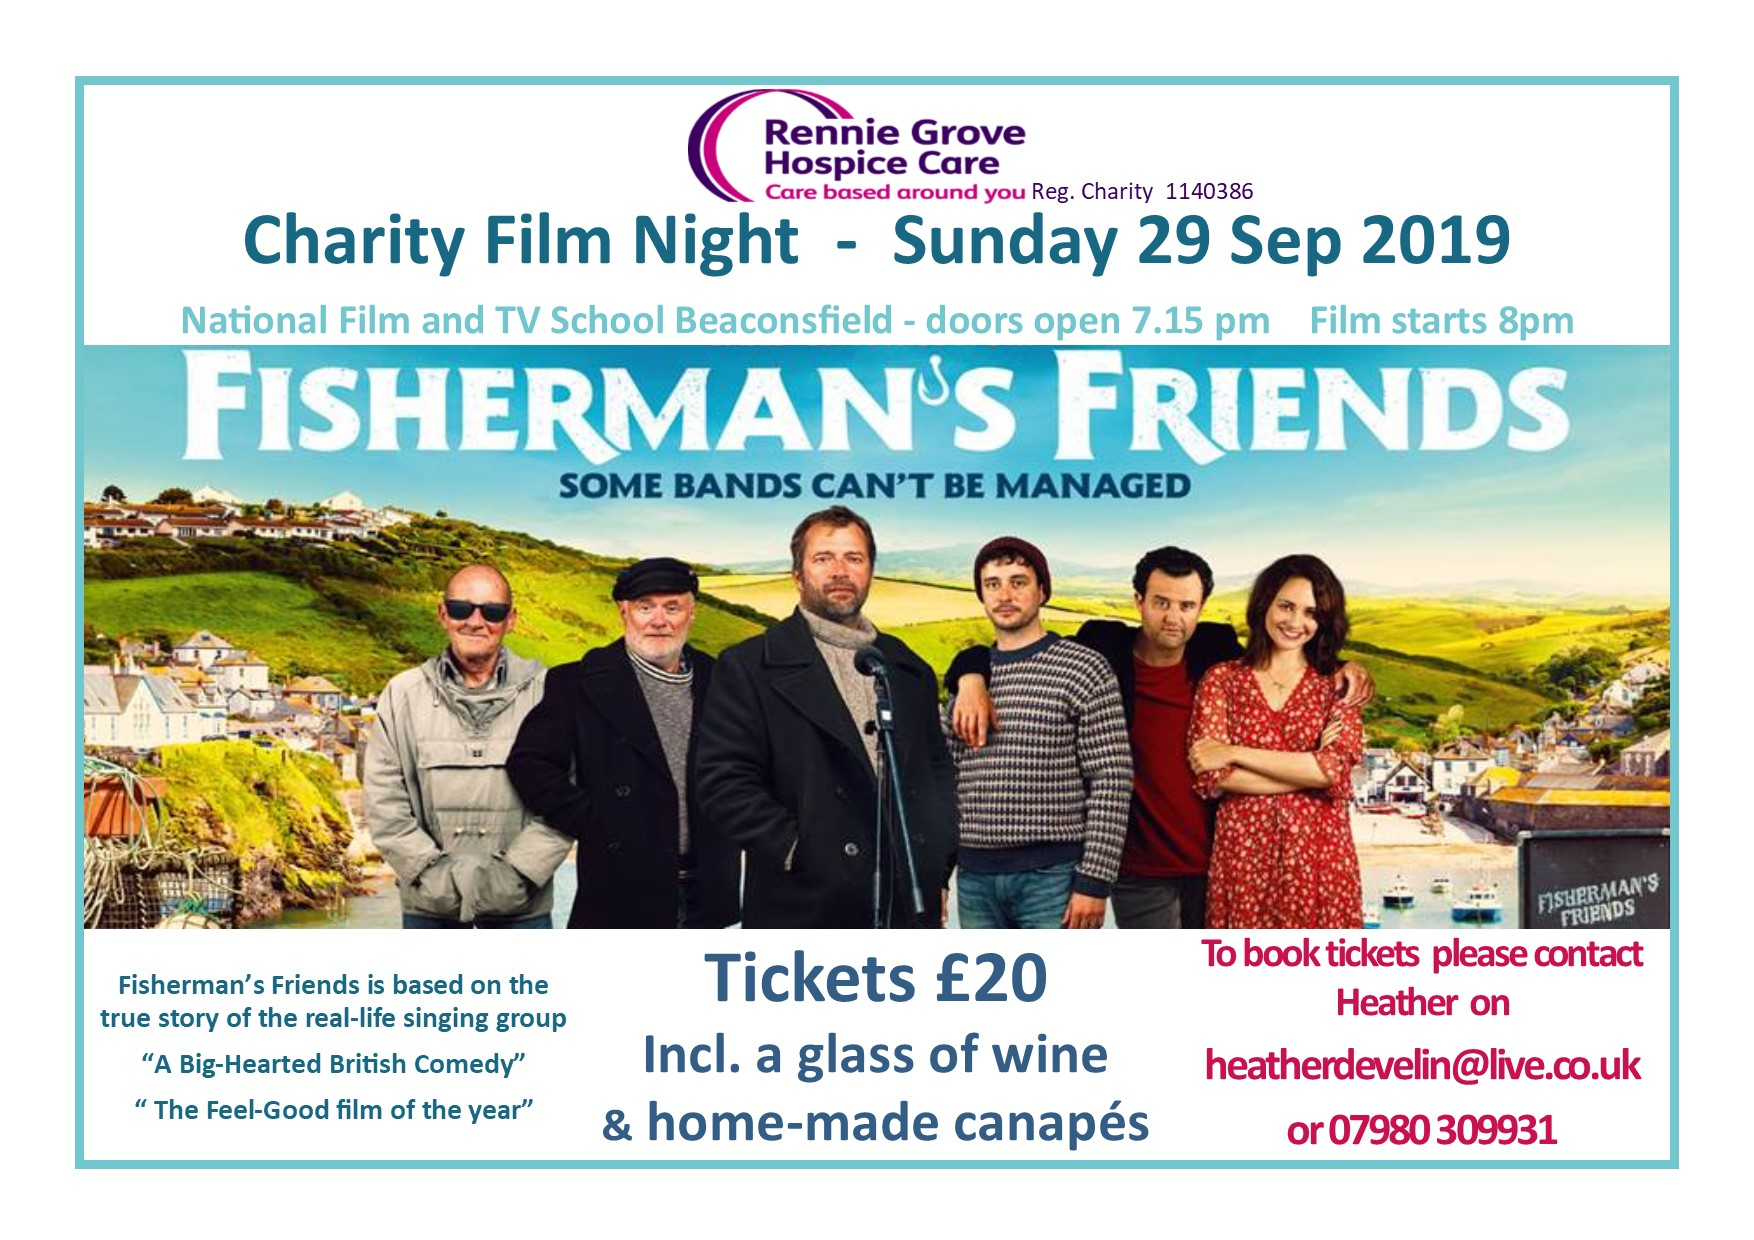 Charity Film Night in aid of Rennie Grove Hospice Care